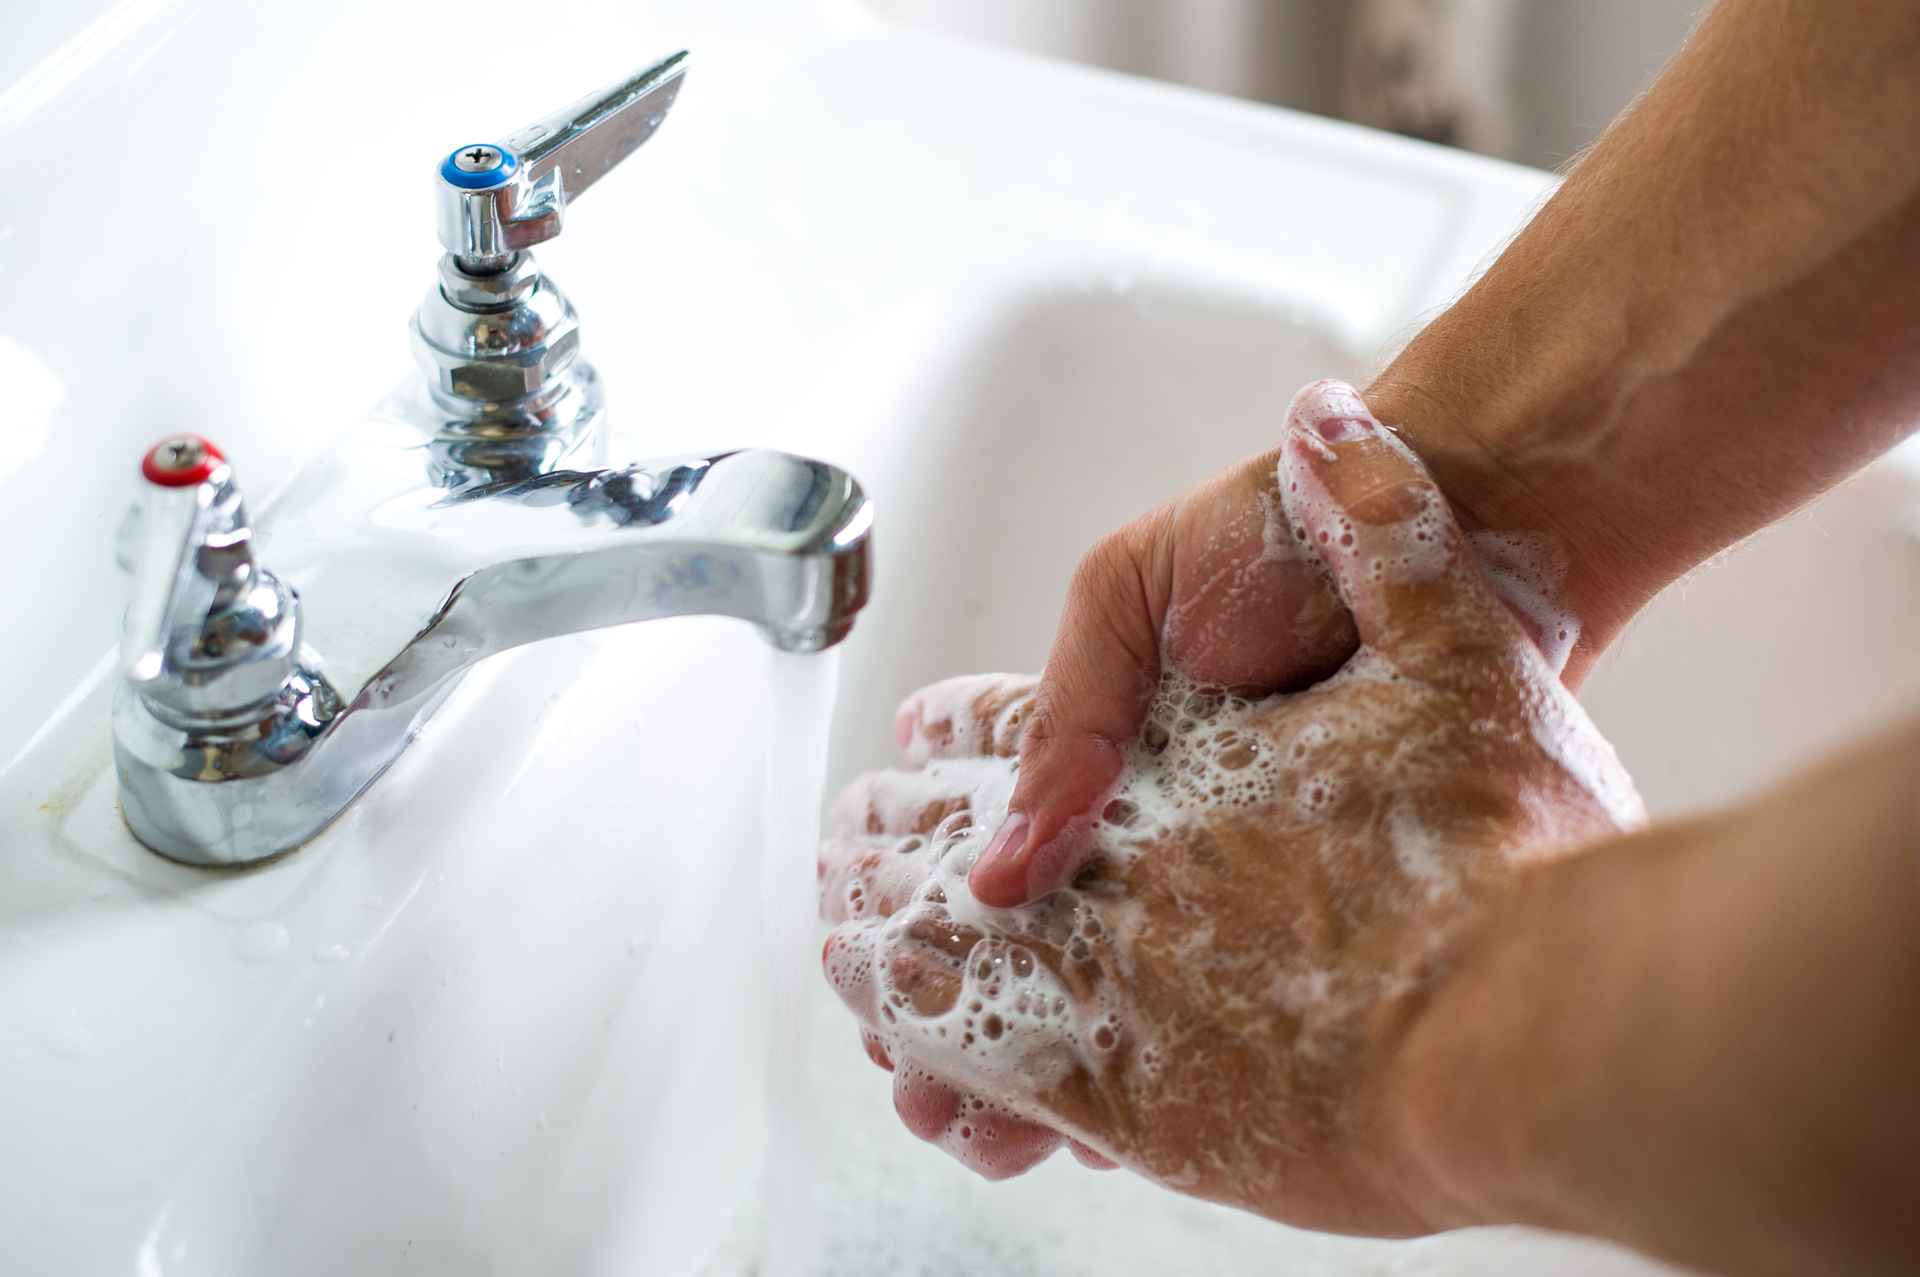 Could antibacterial soap be bad for you? (Photo: Michigan State University)